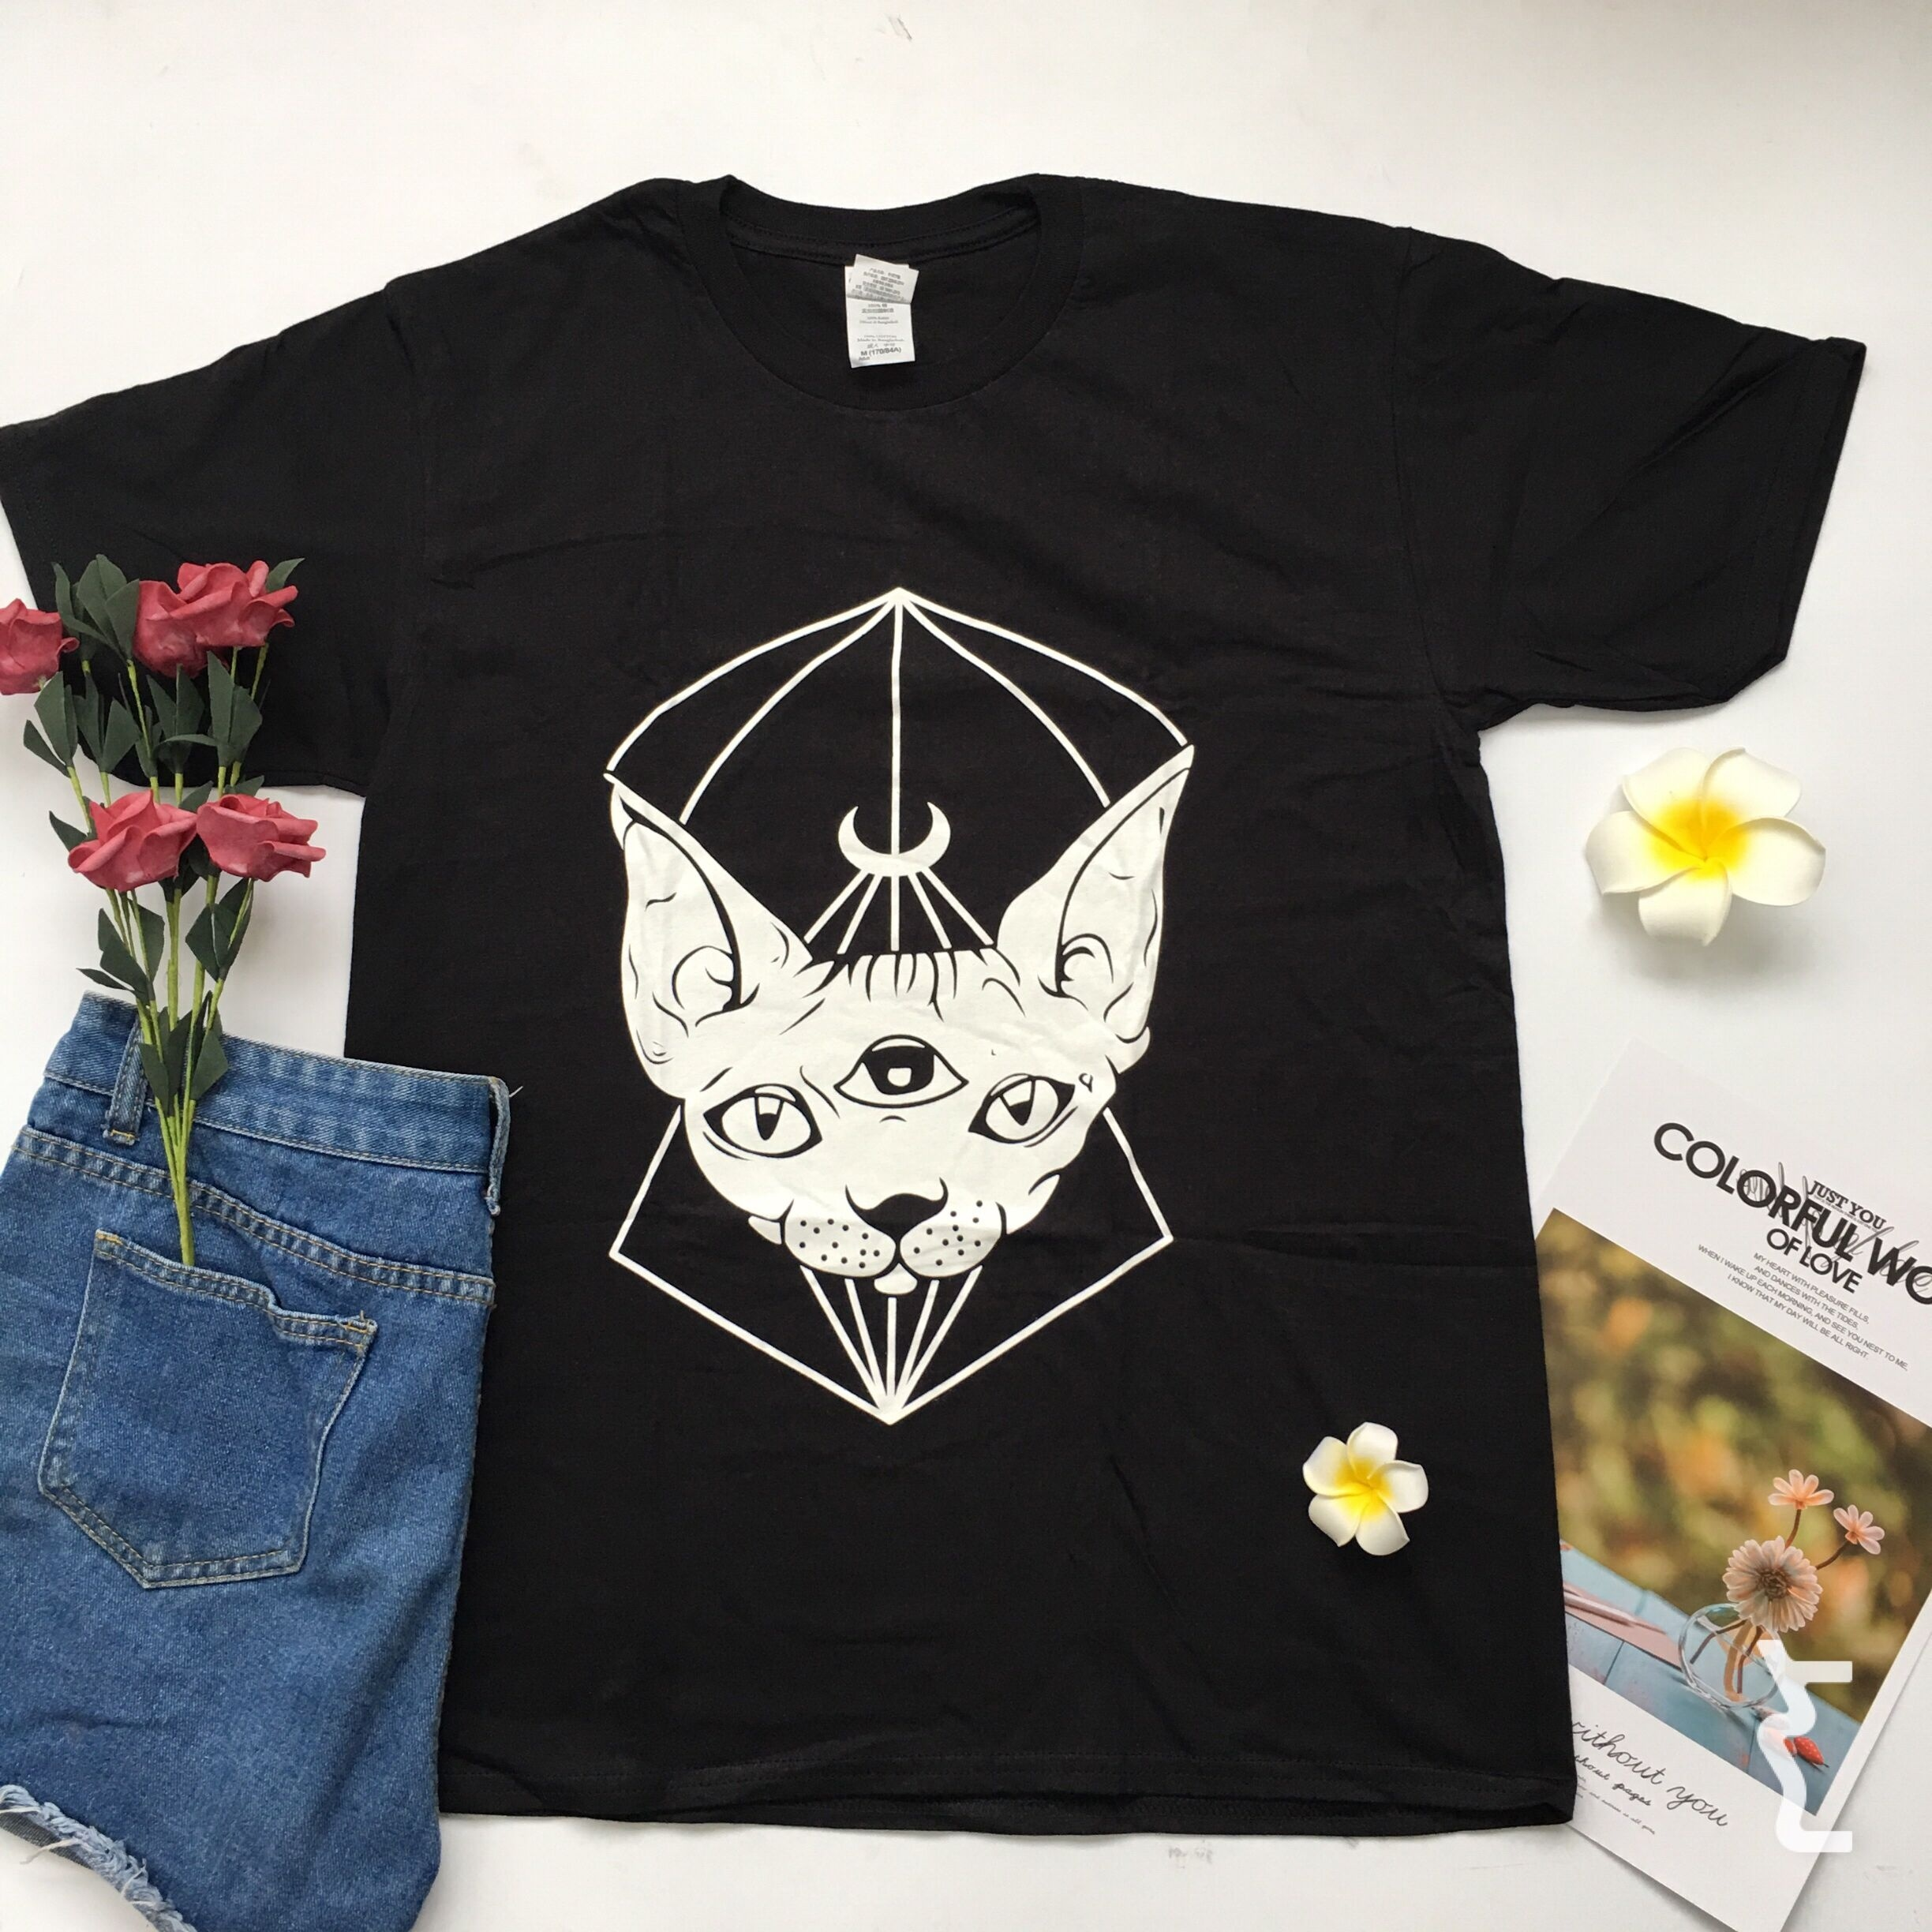 8cbbcd53e PUDO HJN Sphynx Cat Canada T-shirts Cotton Tee Tops Short Sleeve Punk  Gothic Sphynx